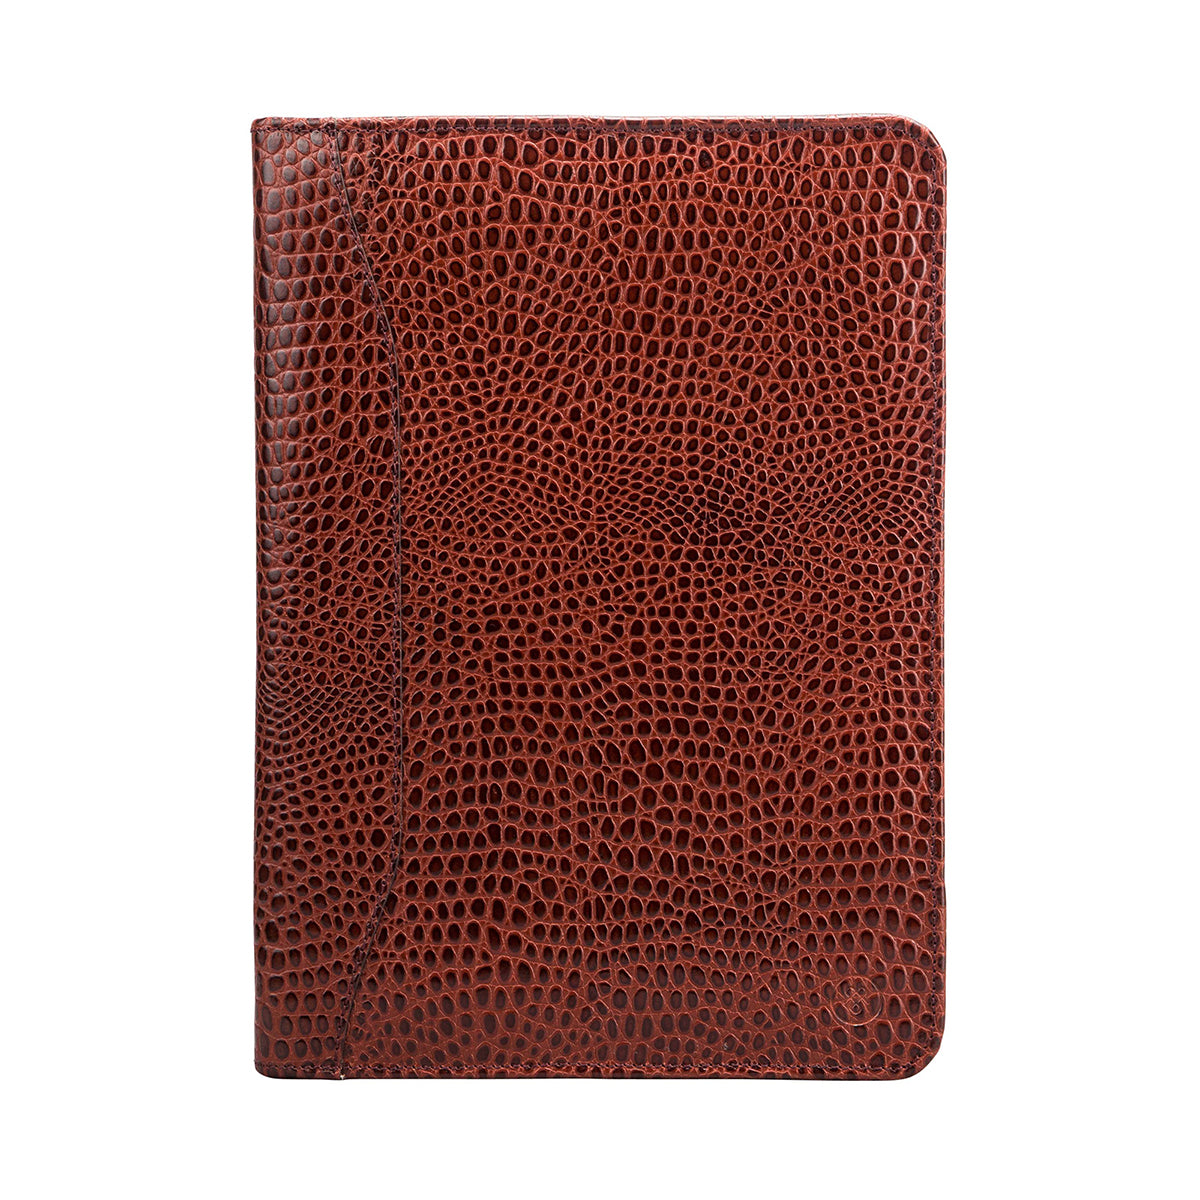 Image 1 of the 'Dimaro' Zipped Mock Croc Leather Conference Folder